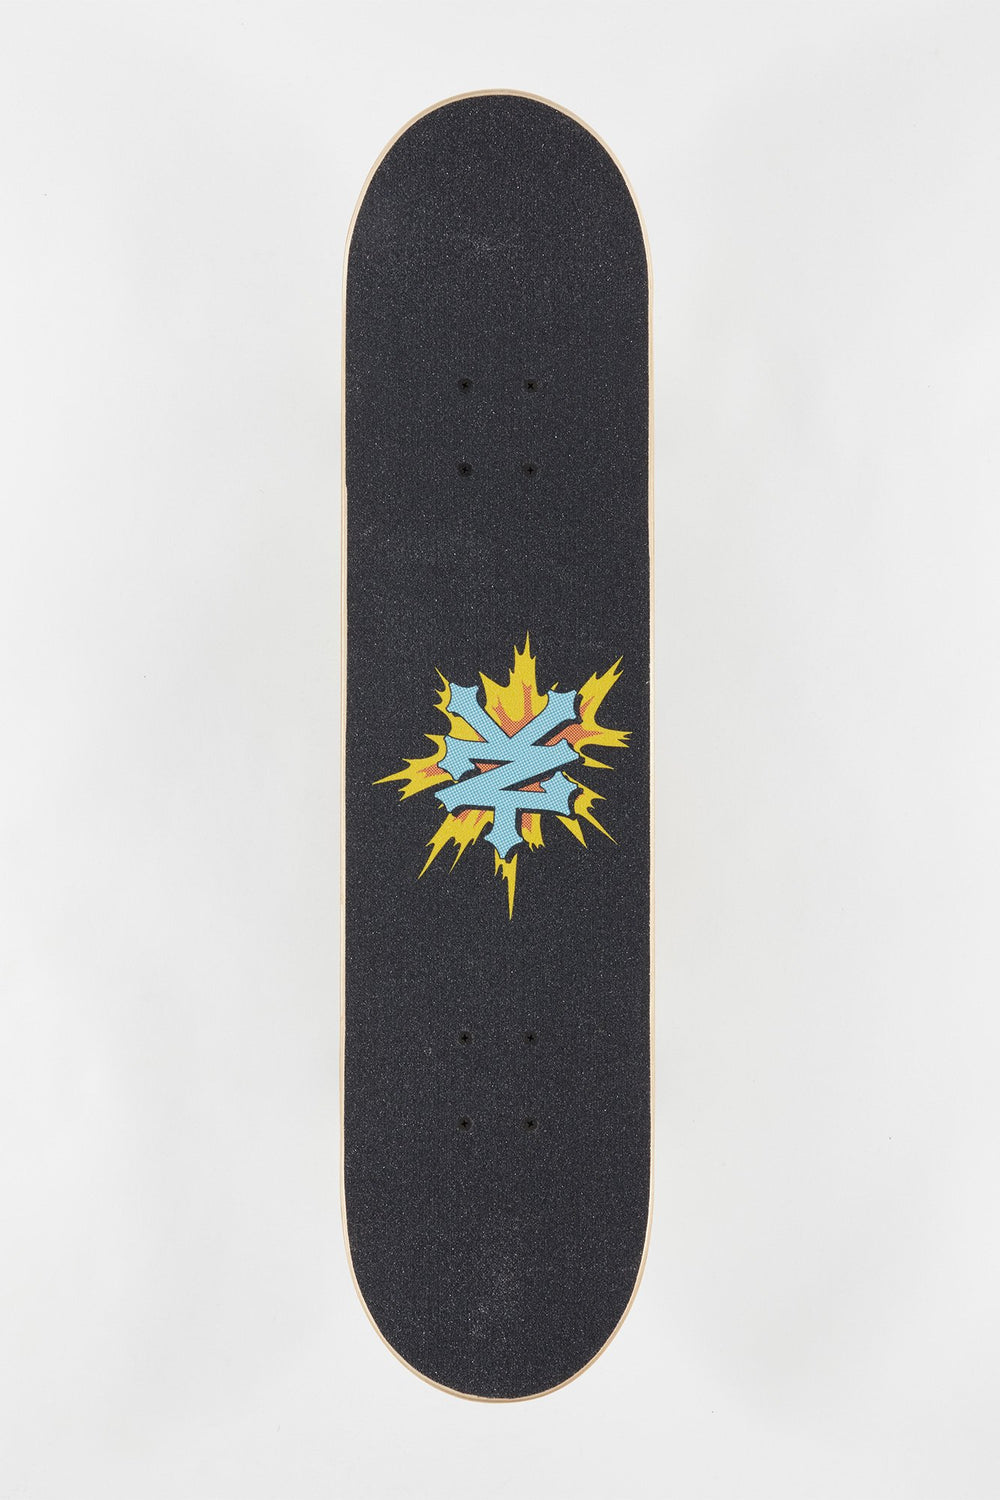 Skateboard Zoo York Pow 7.75